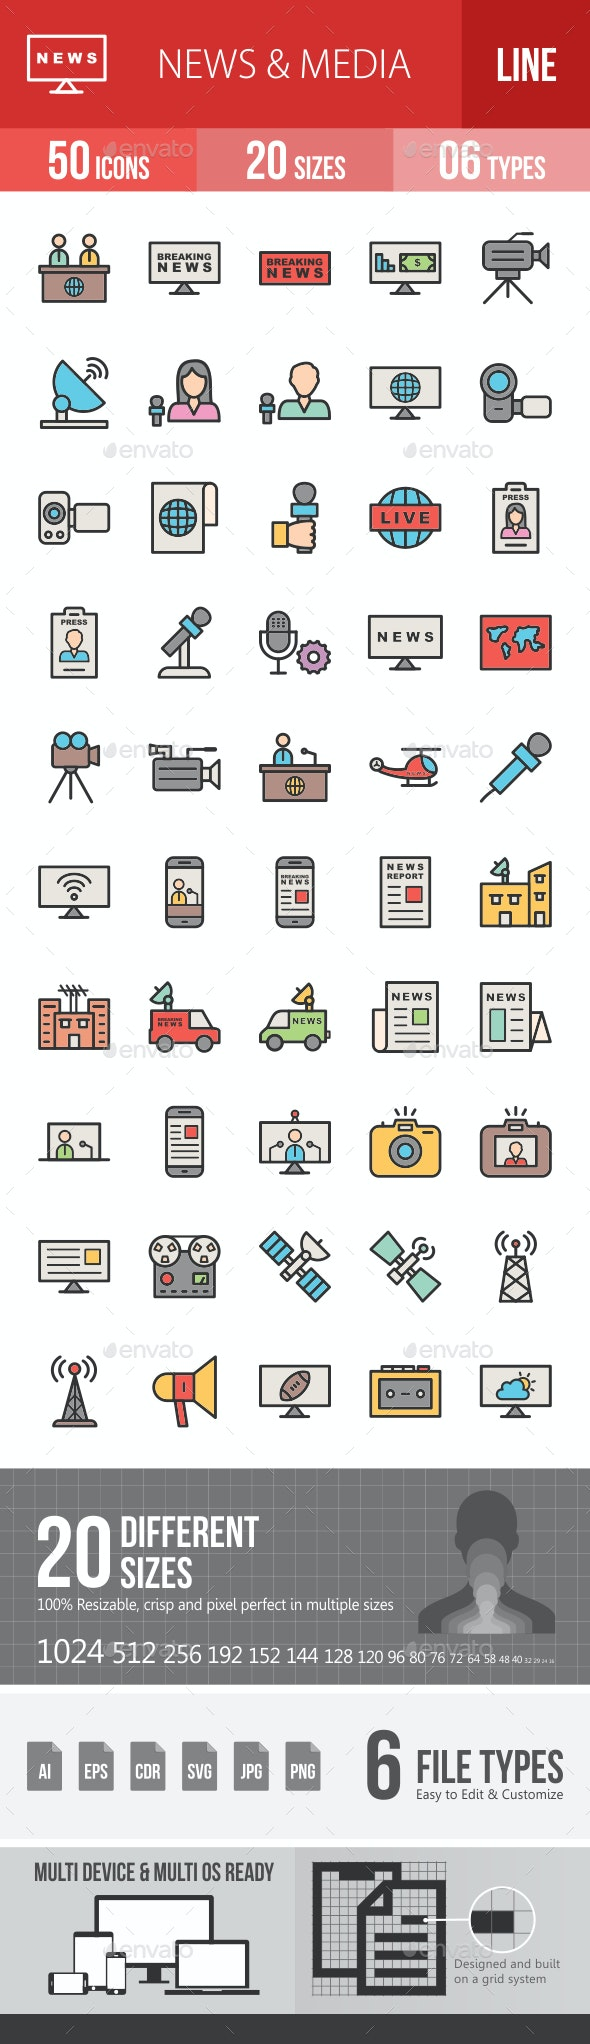 News & Media Line Filled Icons - Icons